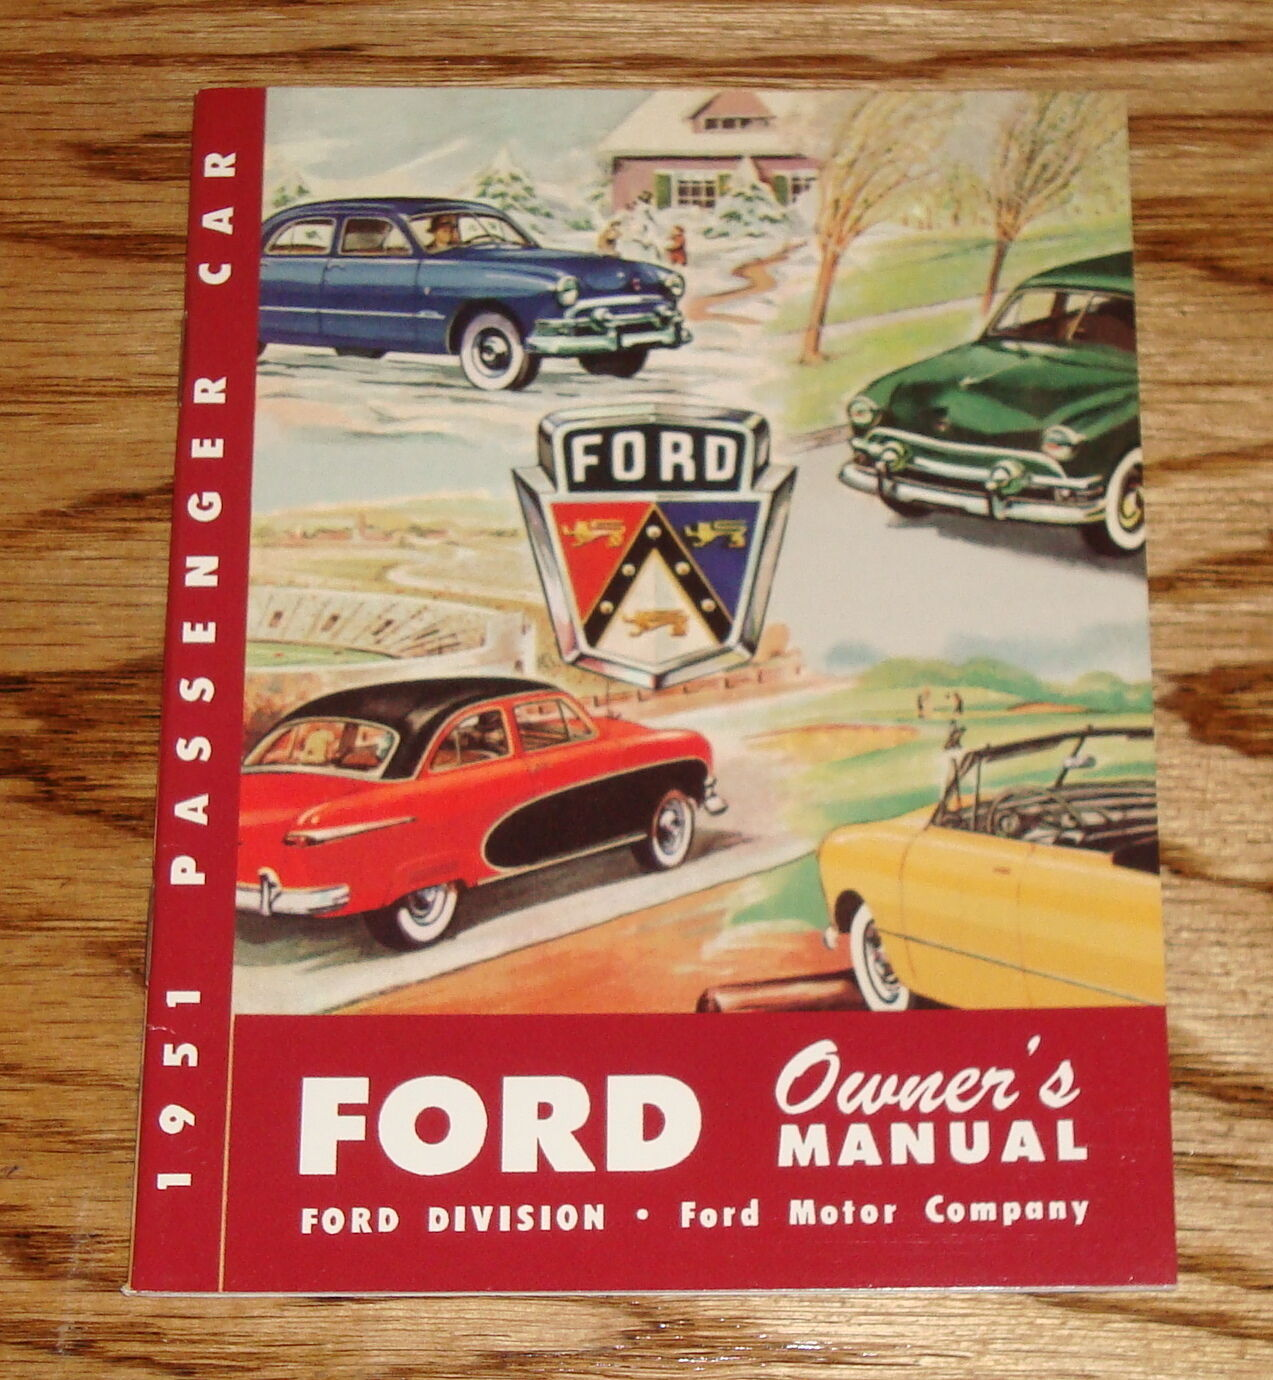 1951 Ford Passenger Car Deluxe Owners Operators Manual 51 1 of 1Only 1  available ...